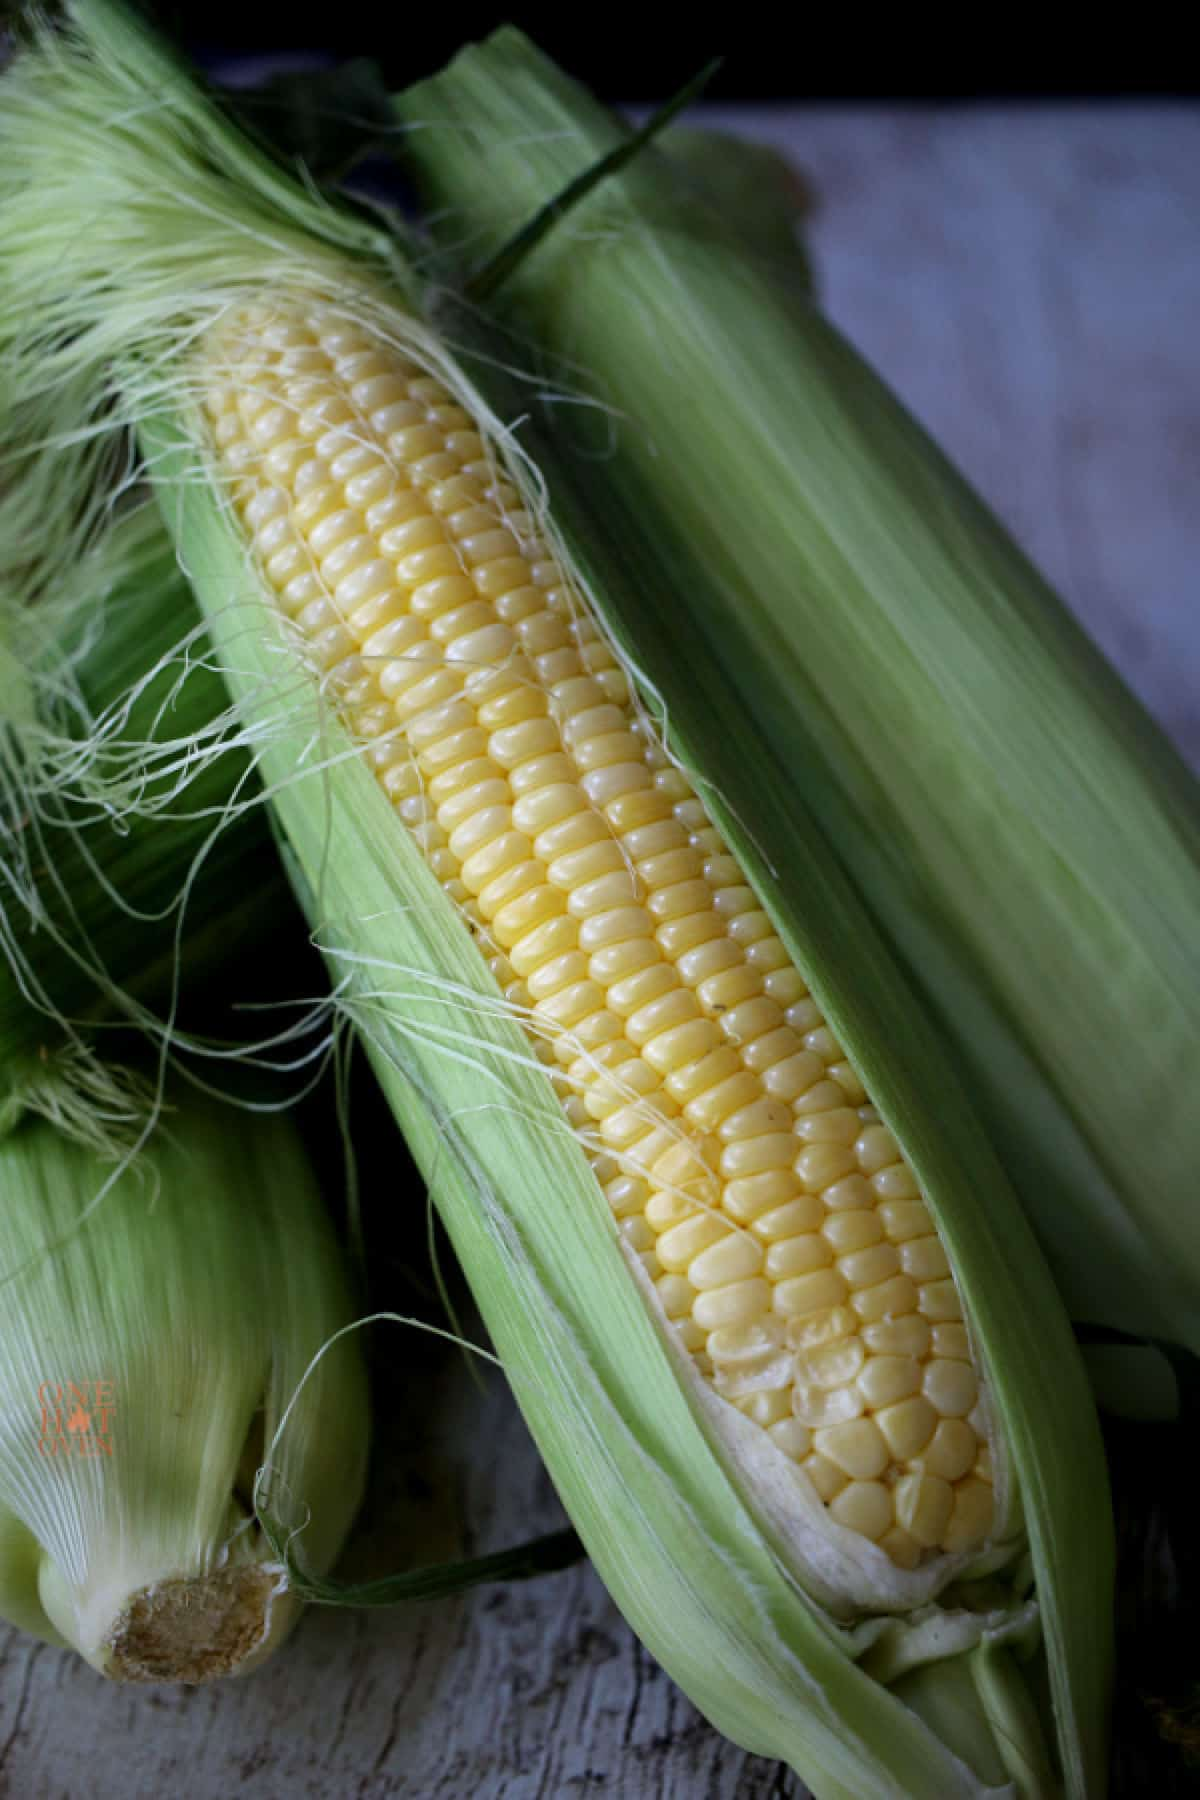 Corn on the cob in the husks.